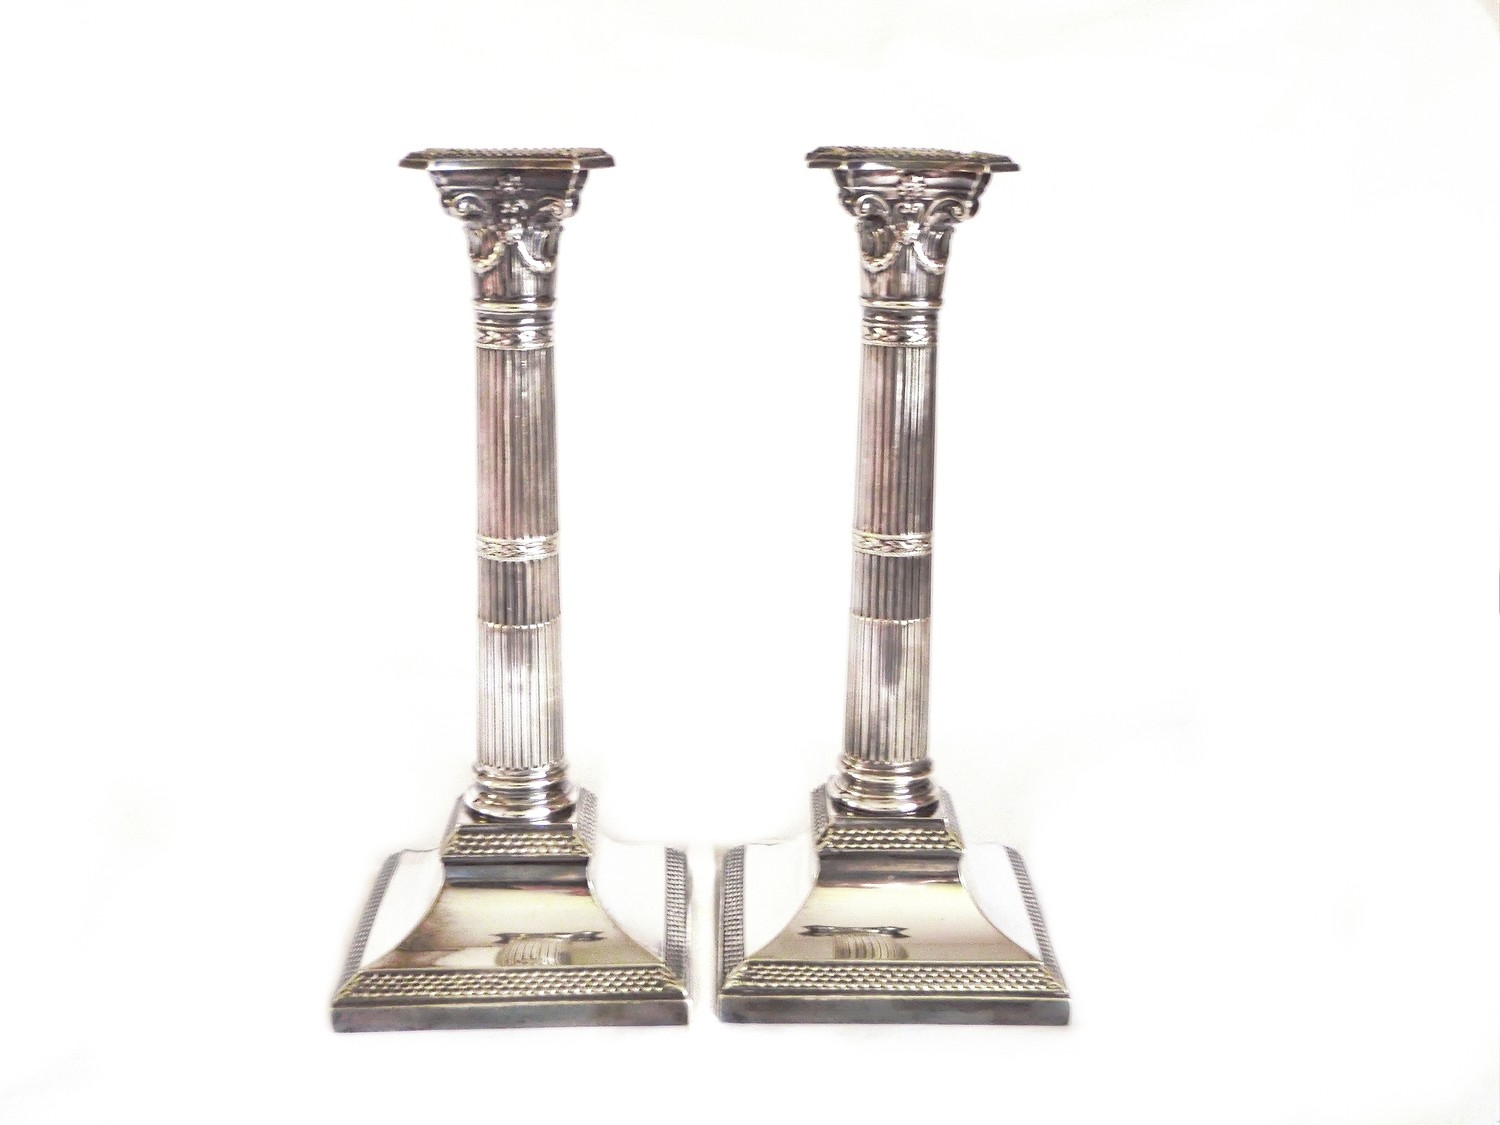 Antique English Victorian Silver Candle Holders 1870 William Hutton Son